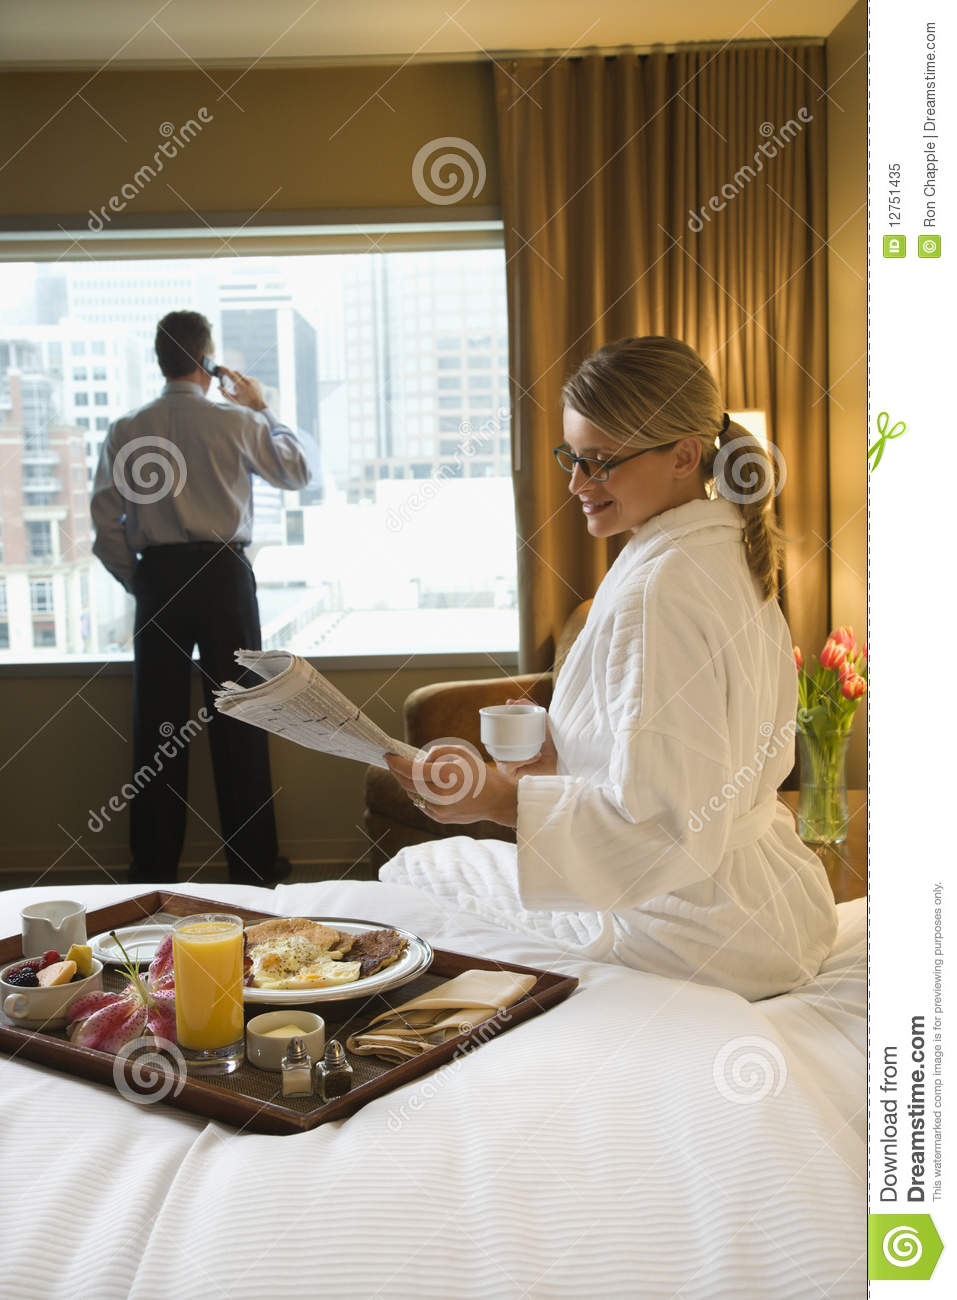 woman and man in hotel room stock image image of hair